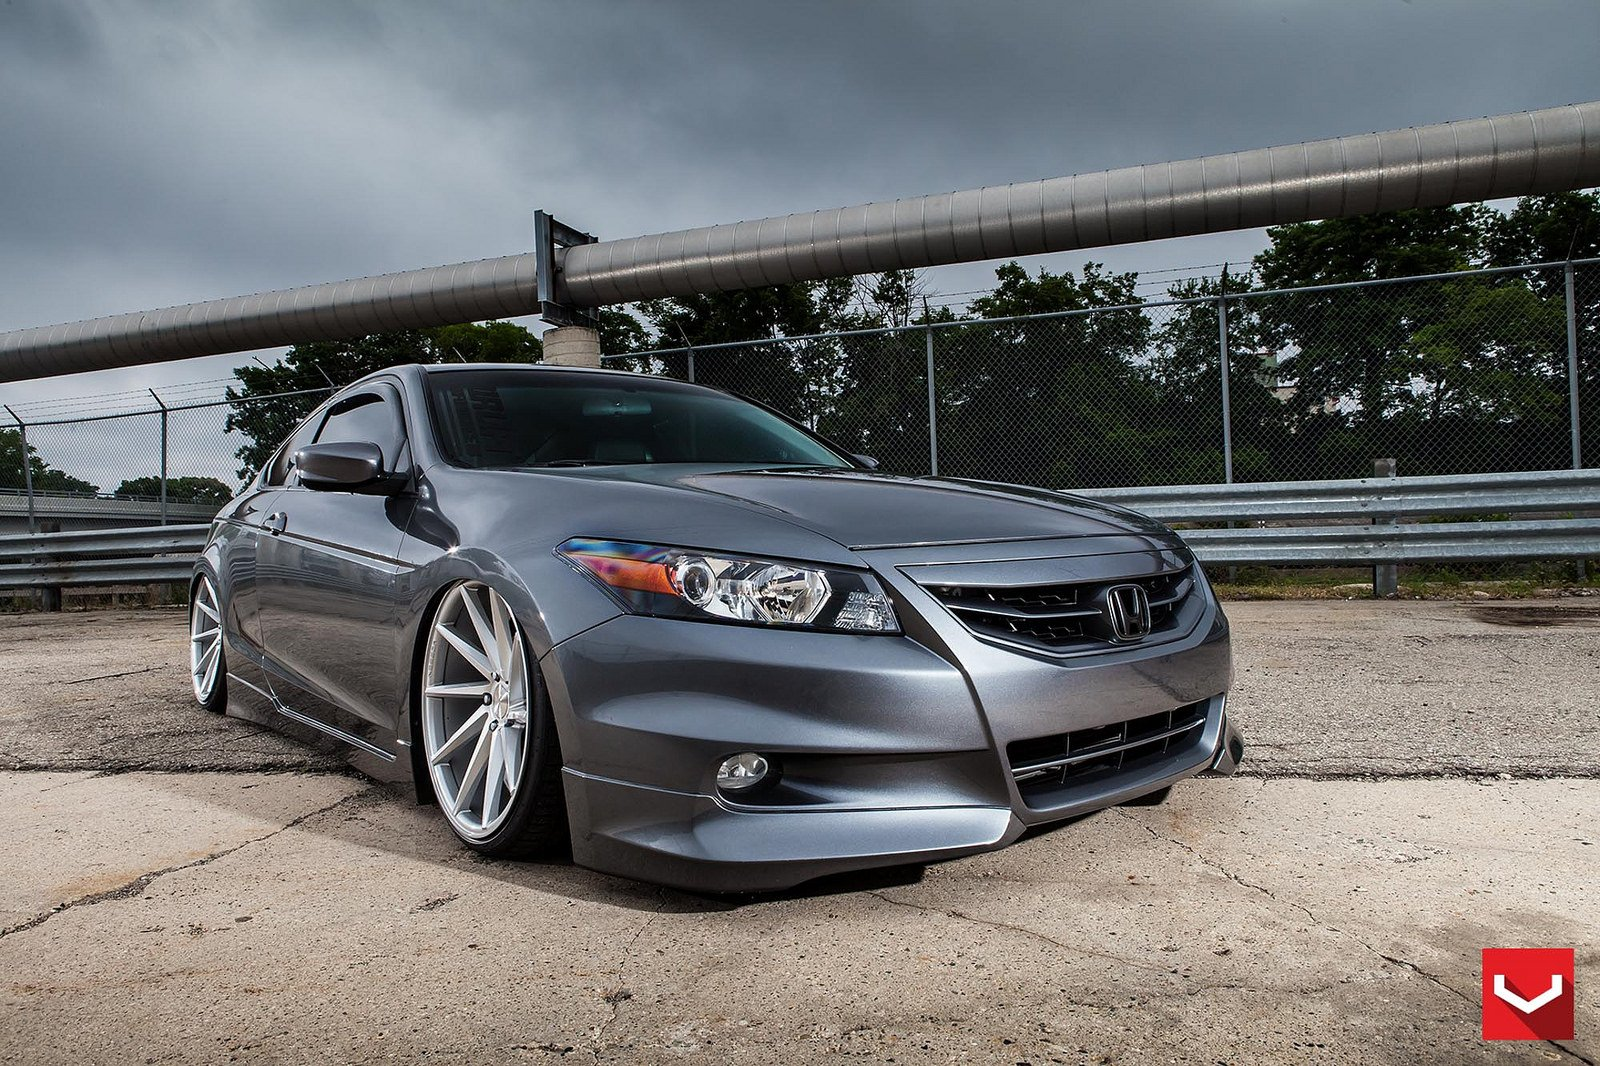 Honda Accord Wheels >> Honda Accord vossen wheels tuning cars wallpaper | 1600x1066 | 680848 | WallpaperUP